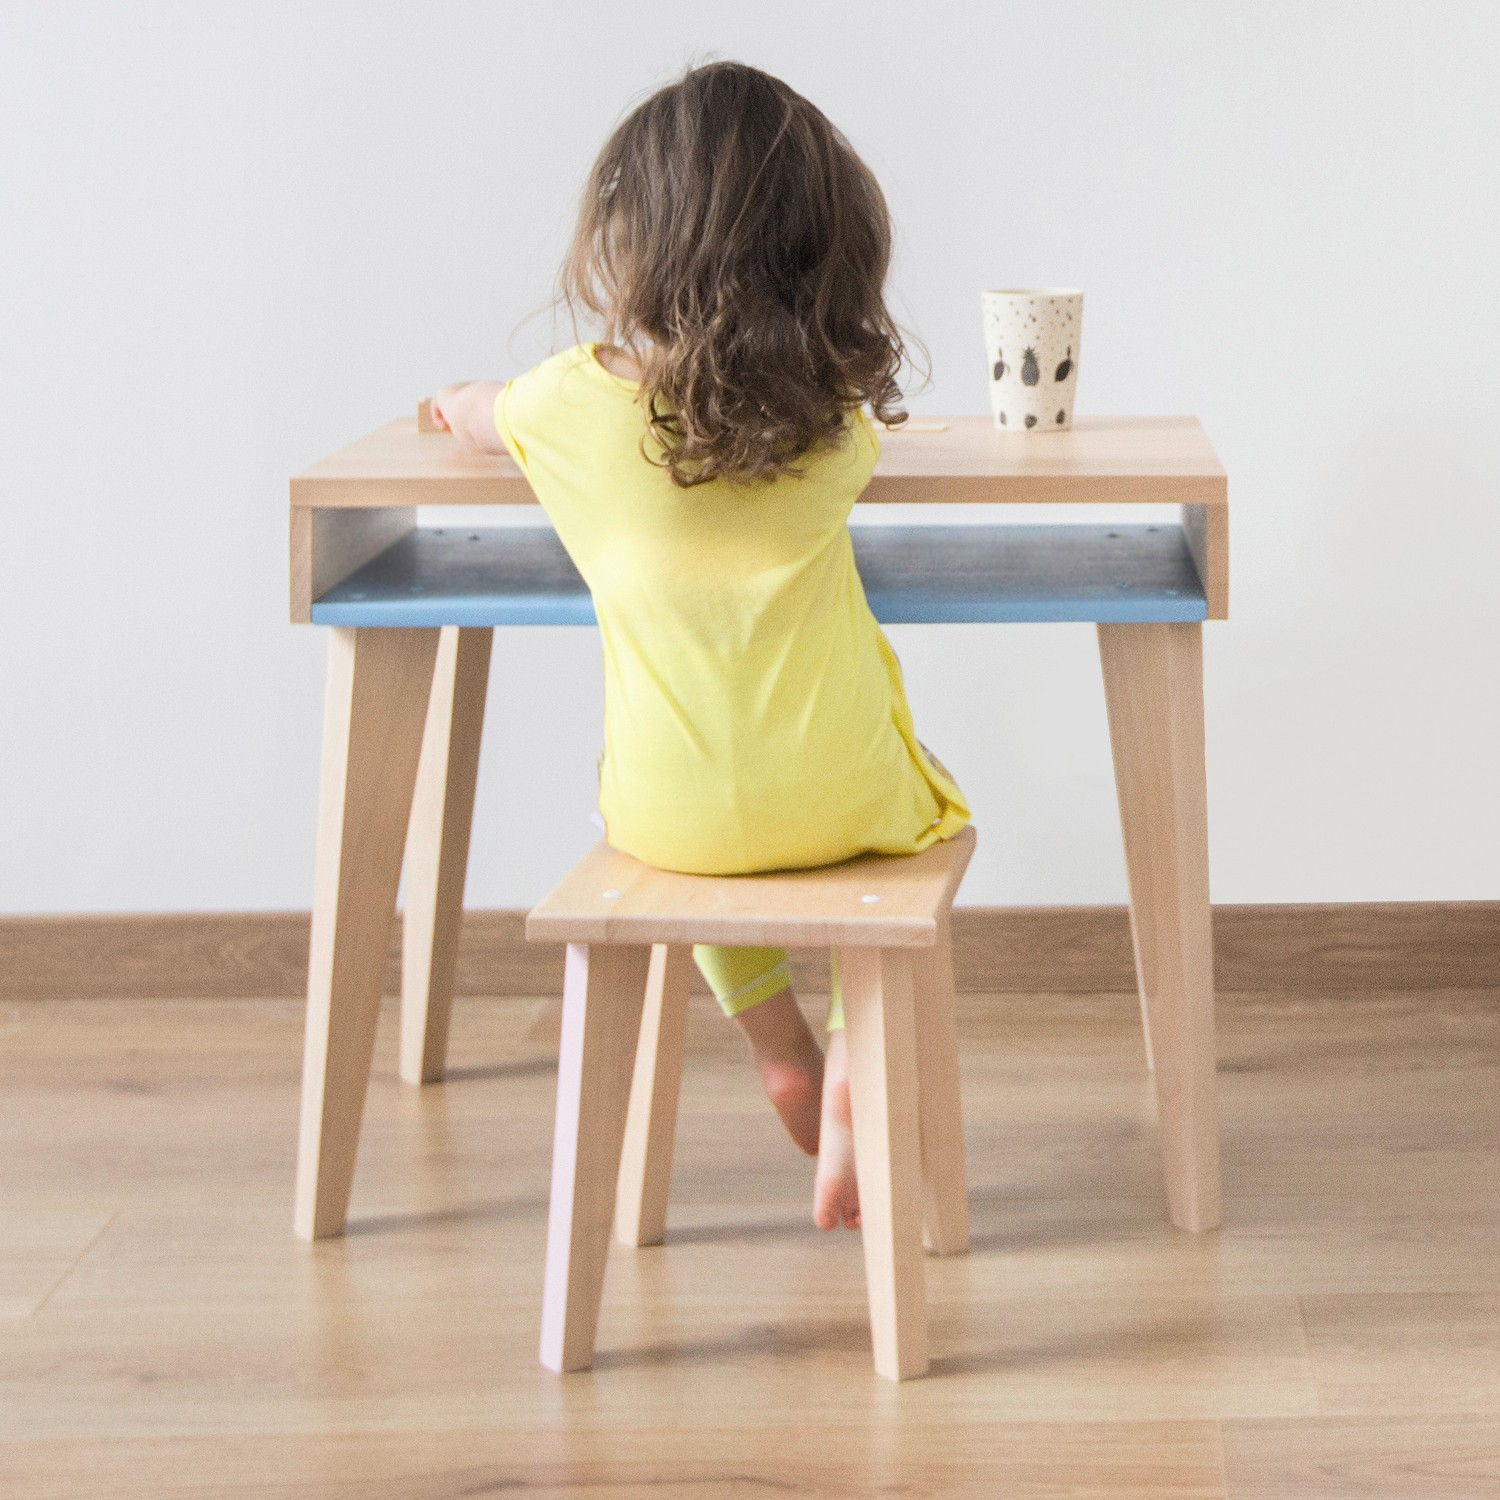 is a young French eco brand designing toys and furniture for children